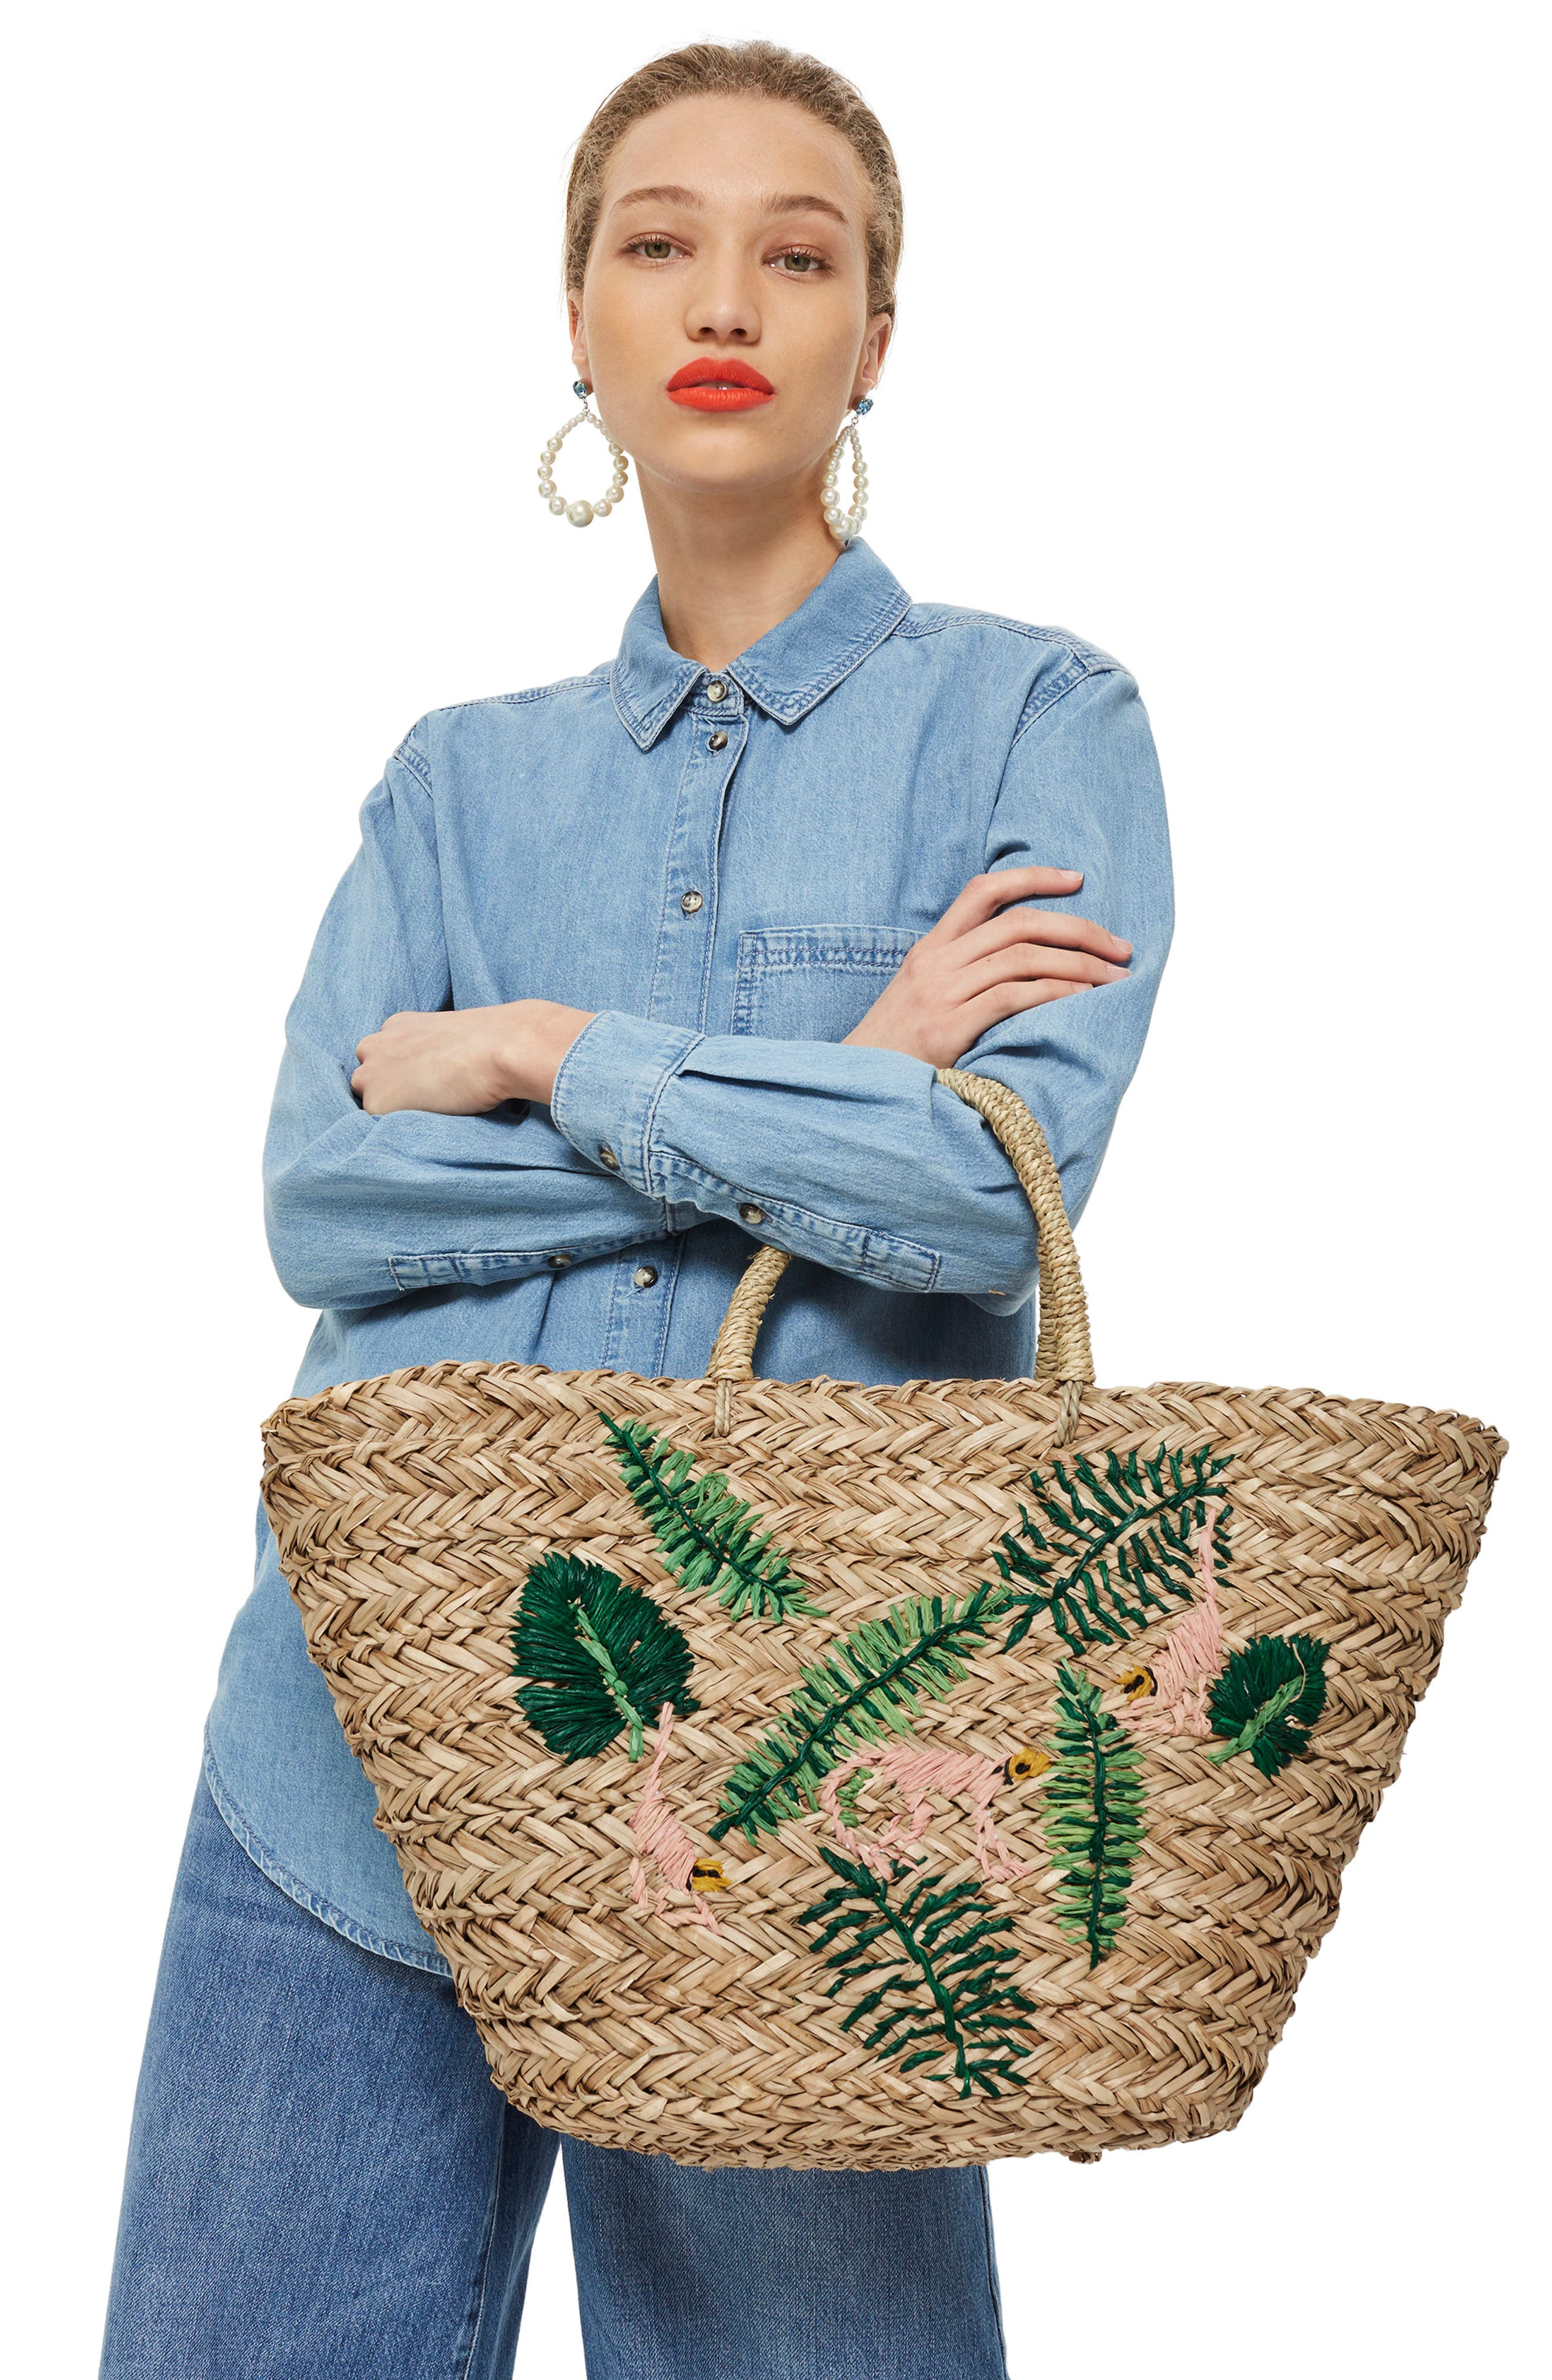 Barrio Monkey Embroidered Straw Tote Bag,                             Alternate thumbnail 2, color,                             Nude Multi